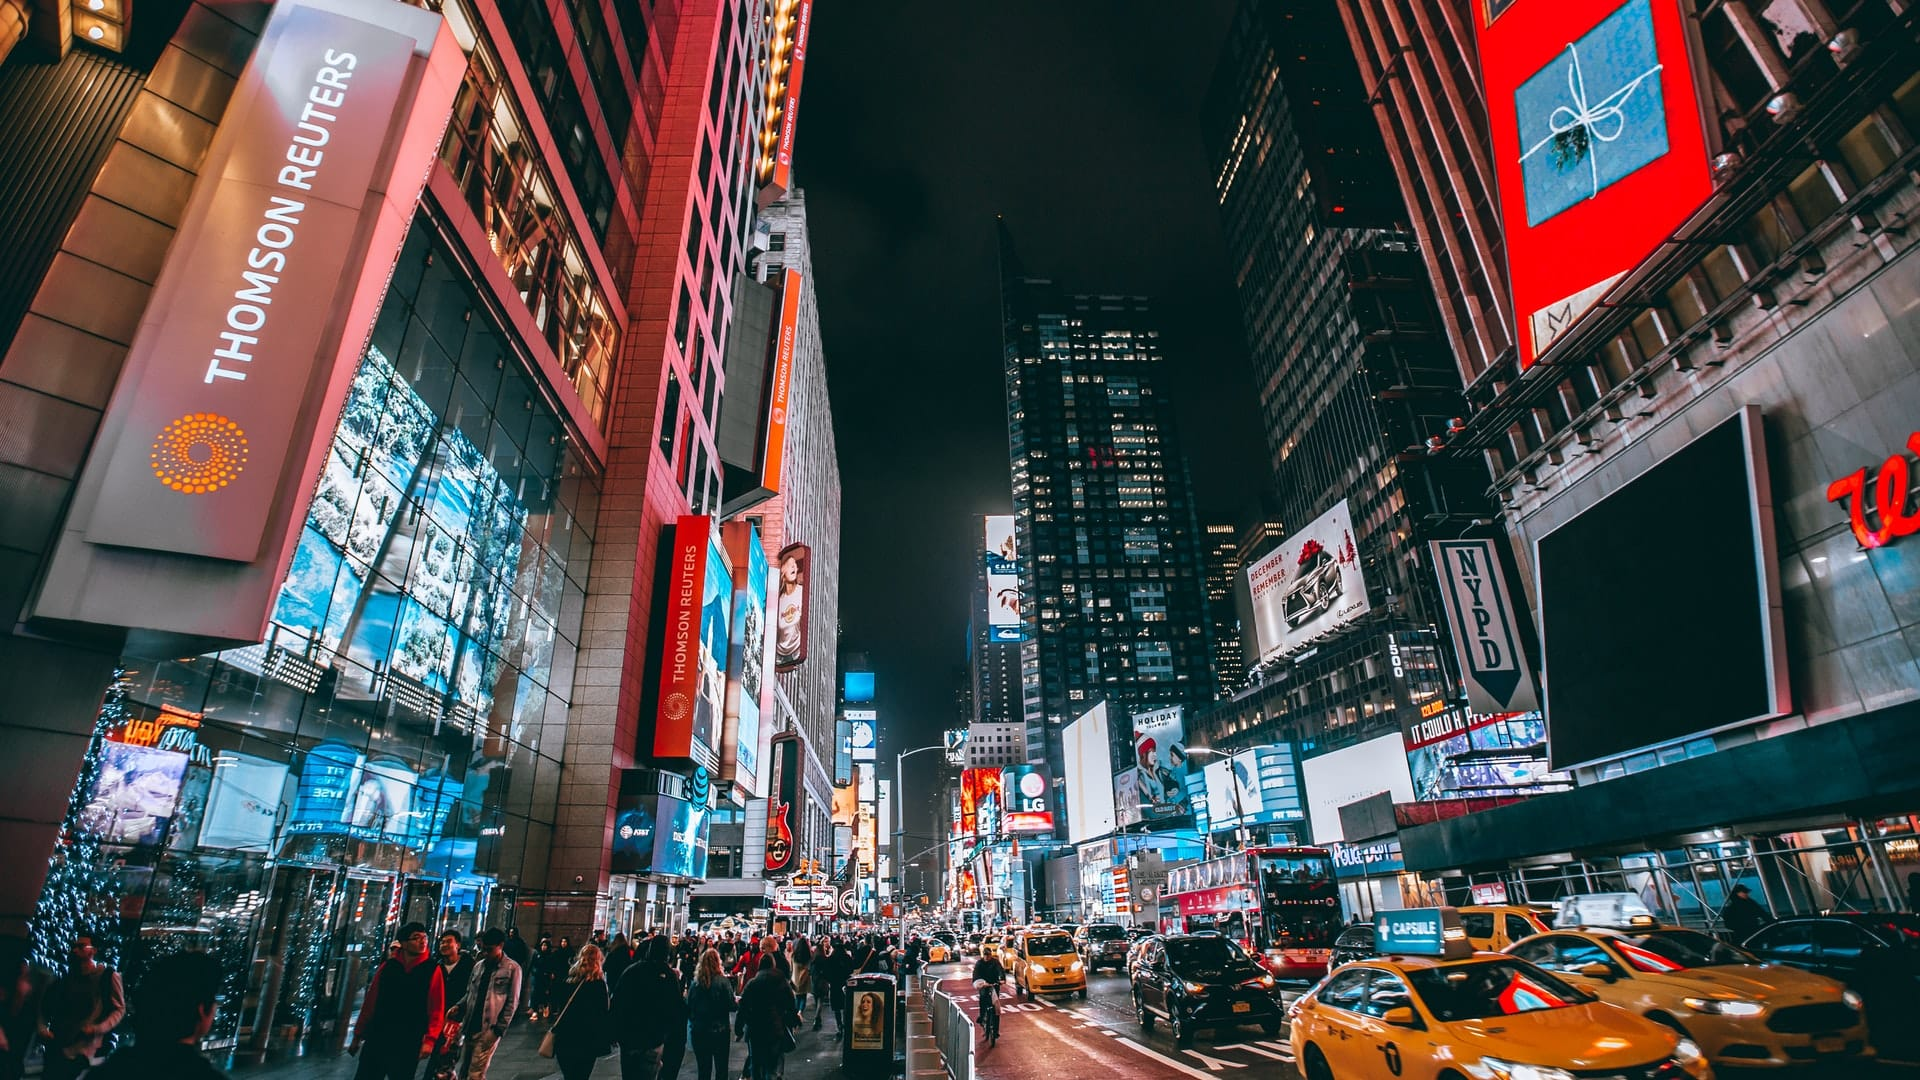 Is Times Square worth visiting?